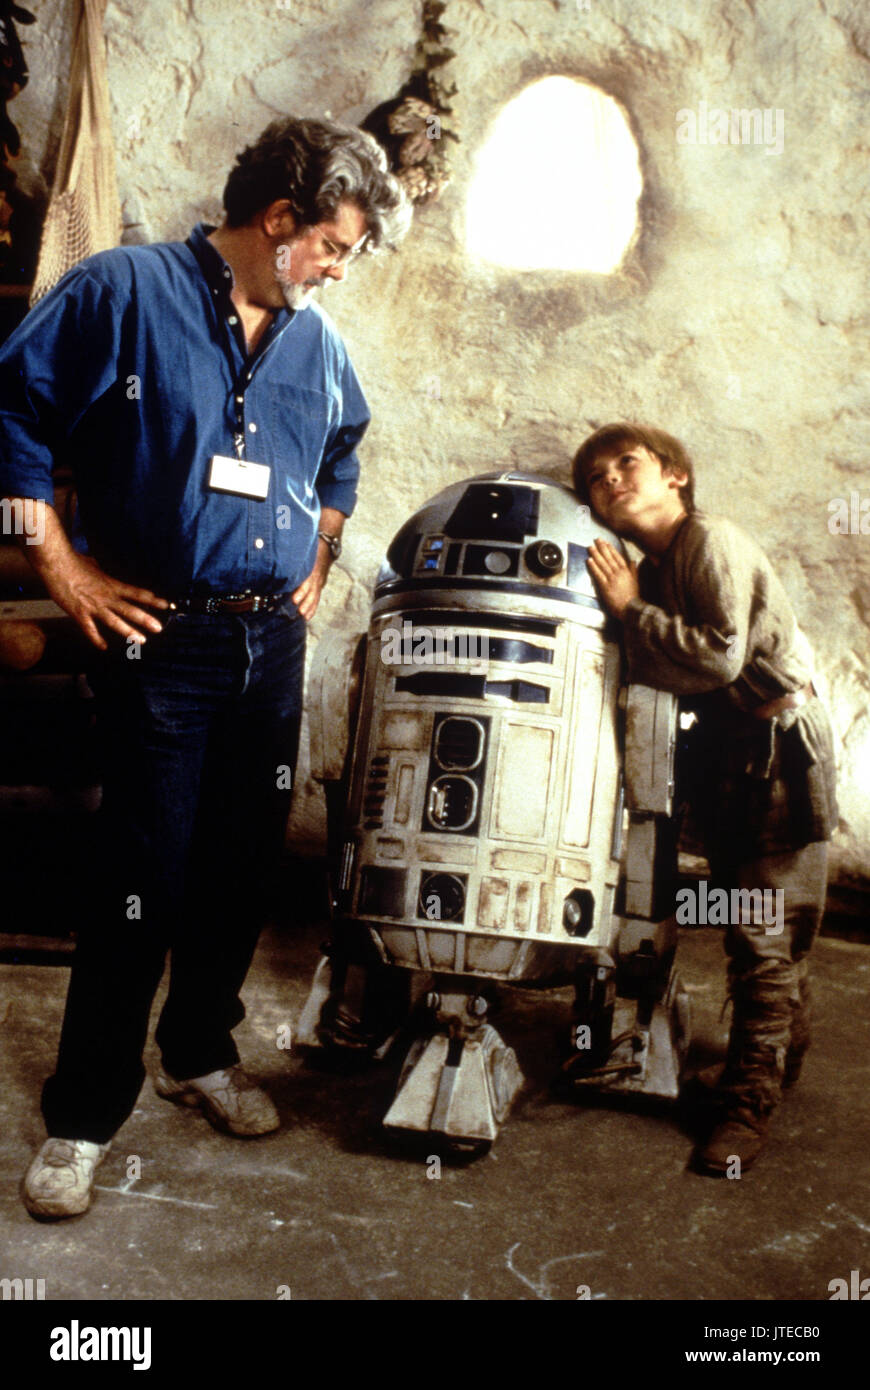 George Lucas R2 D2 Jake Lloyd Star Wars Episode I The Phantom Stock Photo Alamy